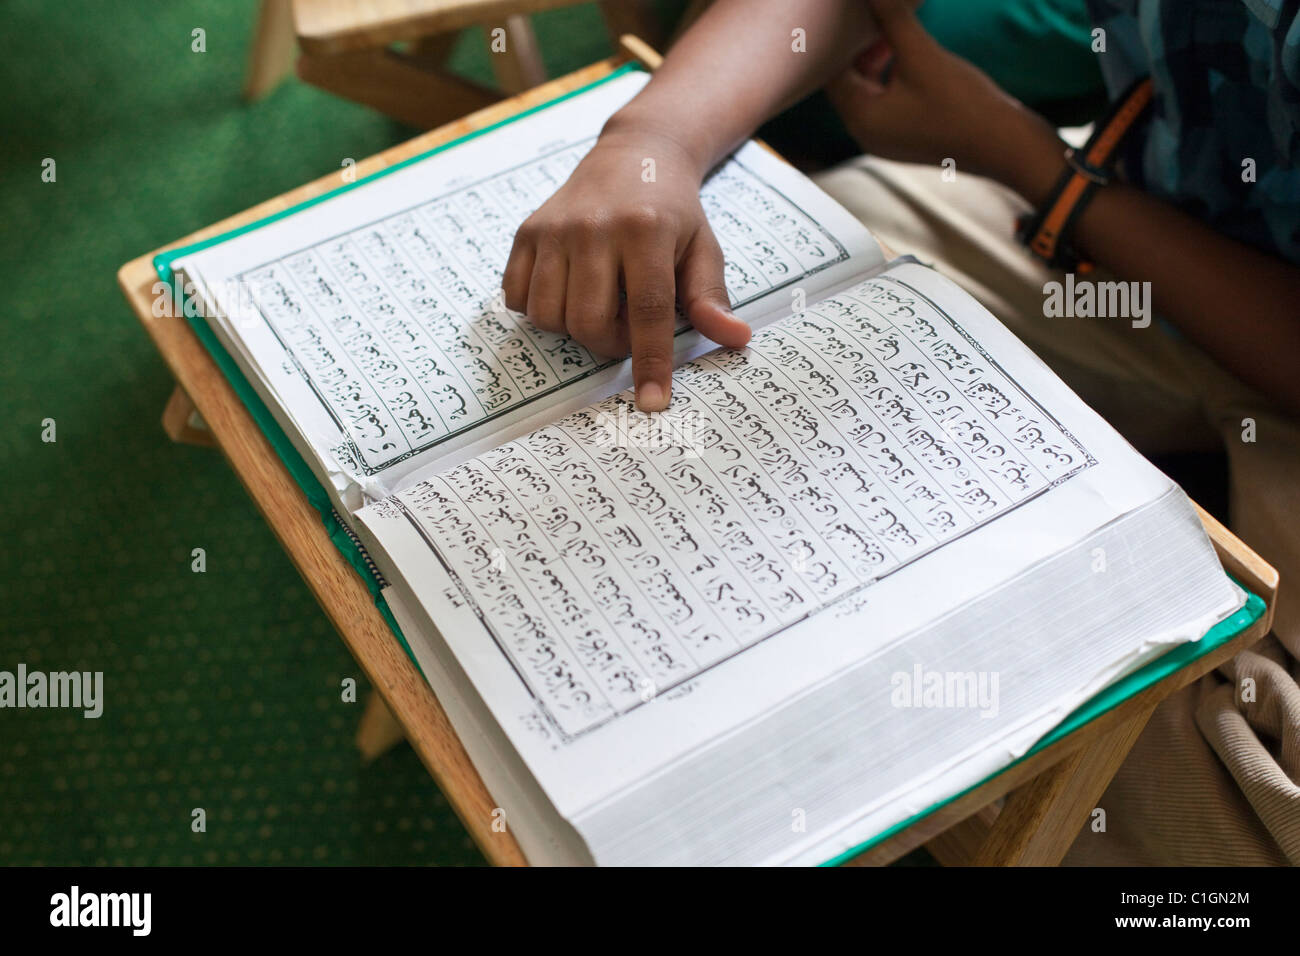 Young boy reading the Qur'an.   Little India, Singapore - Stock Image